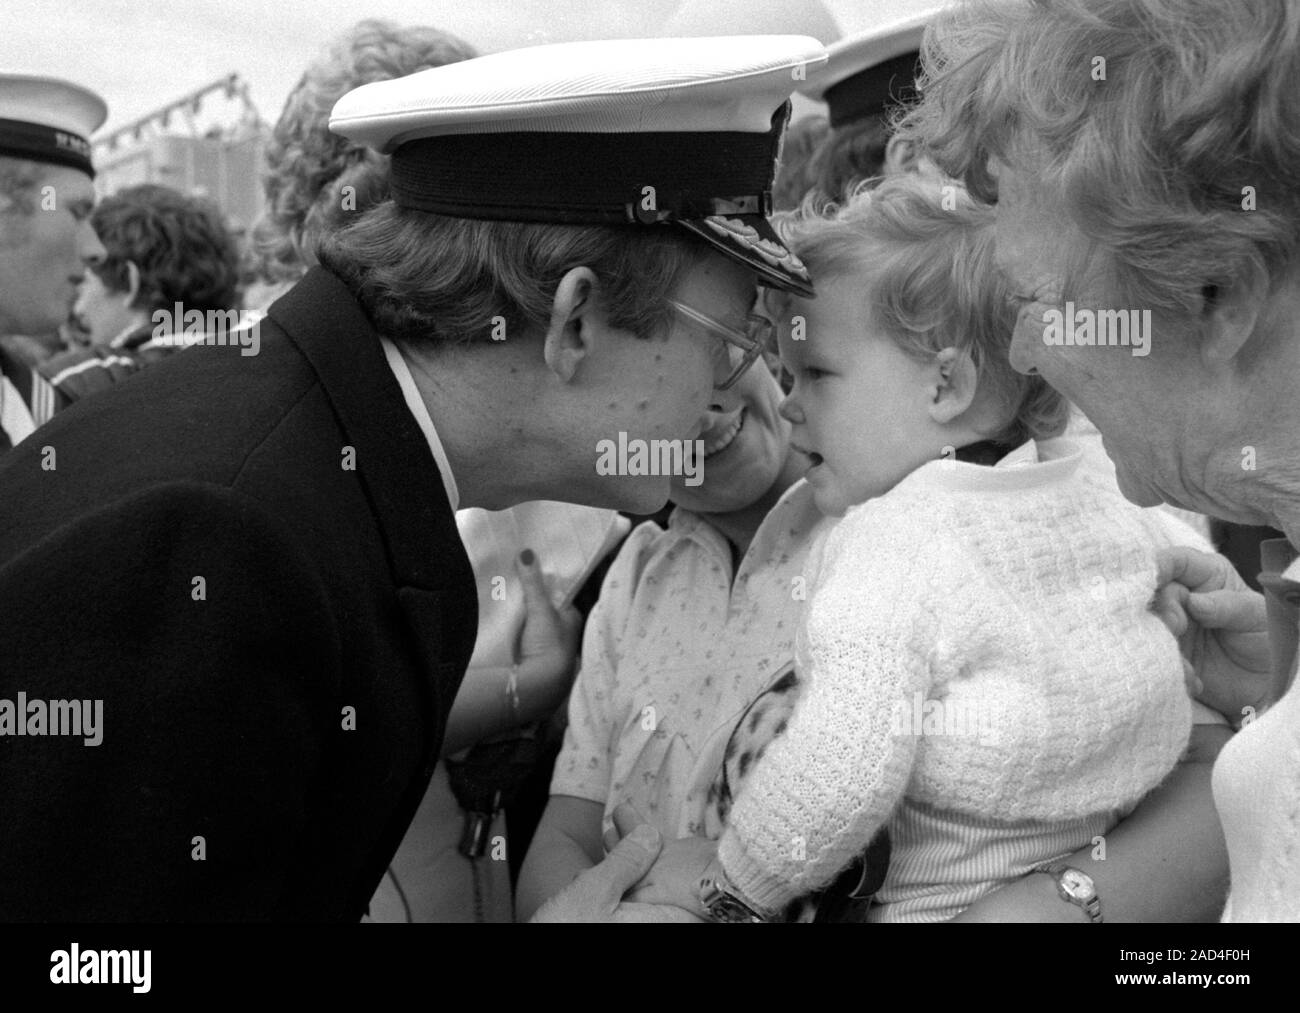 AJAXNETPHOTO. 19TH JUNE, 1982.PORTSMOUTH, ENGLAND. - FALKLANDS VETERAN - AN OFFICER OF THE SHEFFIELD CLASS (TYPE 42/1&2) DESTROYER HMS GLASGOW RECEIVES A WARM WELCOME FROM HIS YOUNG FAMILY WHEN HIS BOMB DAMAGED SHIP RETURNED TO PORTSMOUTH IN 1982.  PHOTO:JONATHAN EASTLAND/AJAX.  REF:HD NA GLAS 82 22. Stock Photo